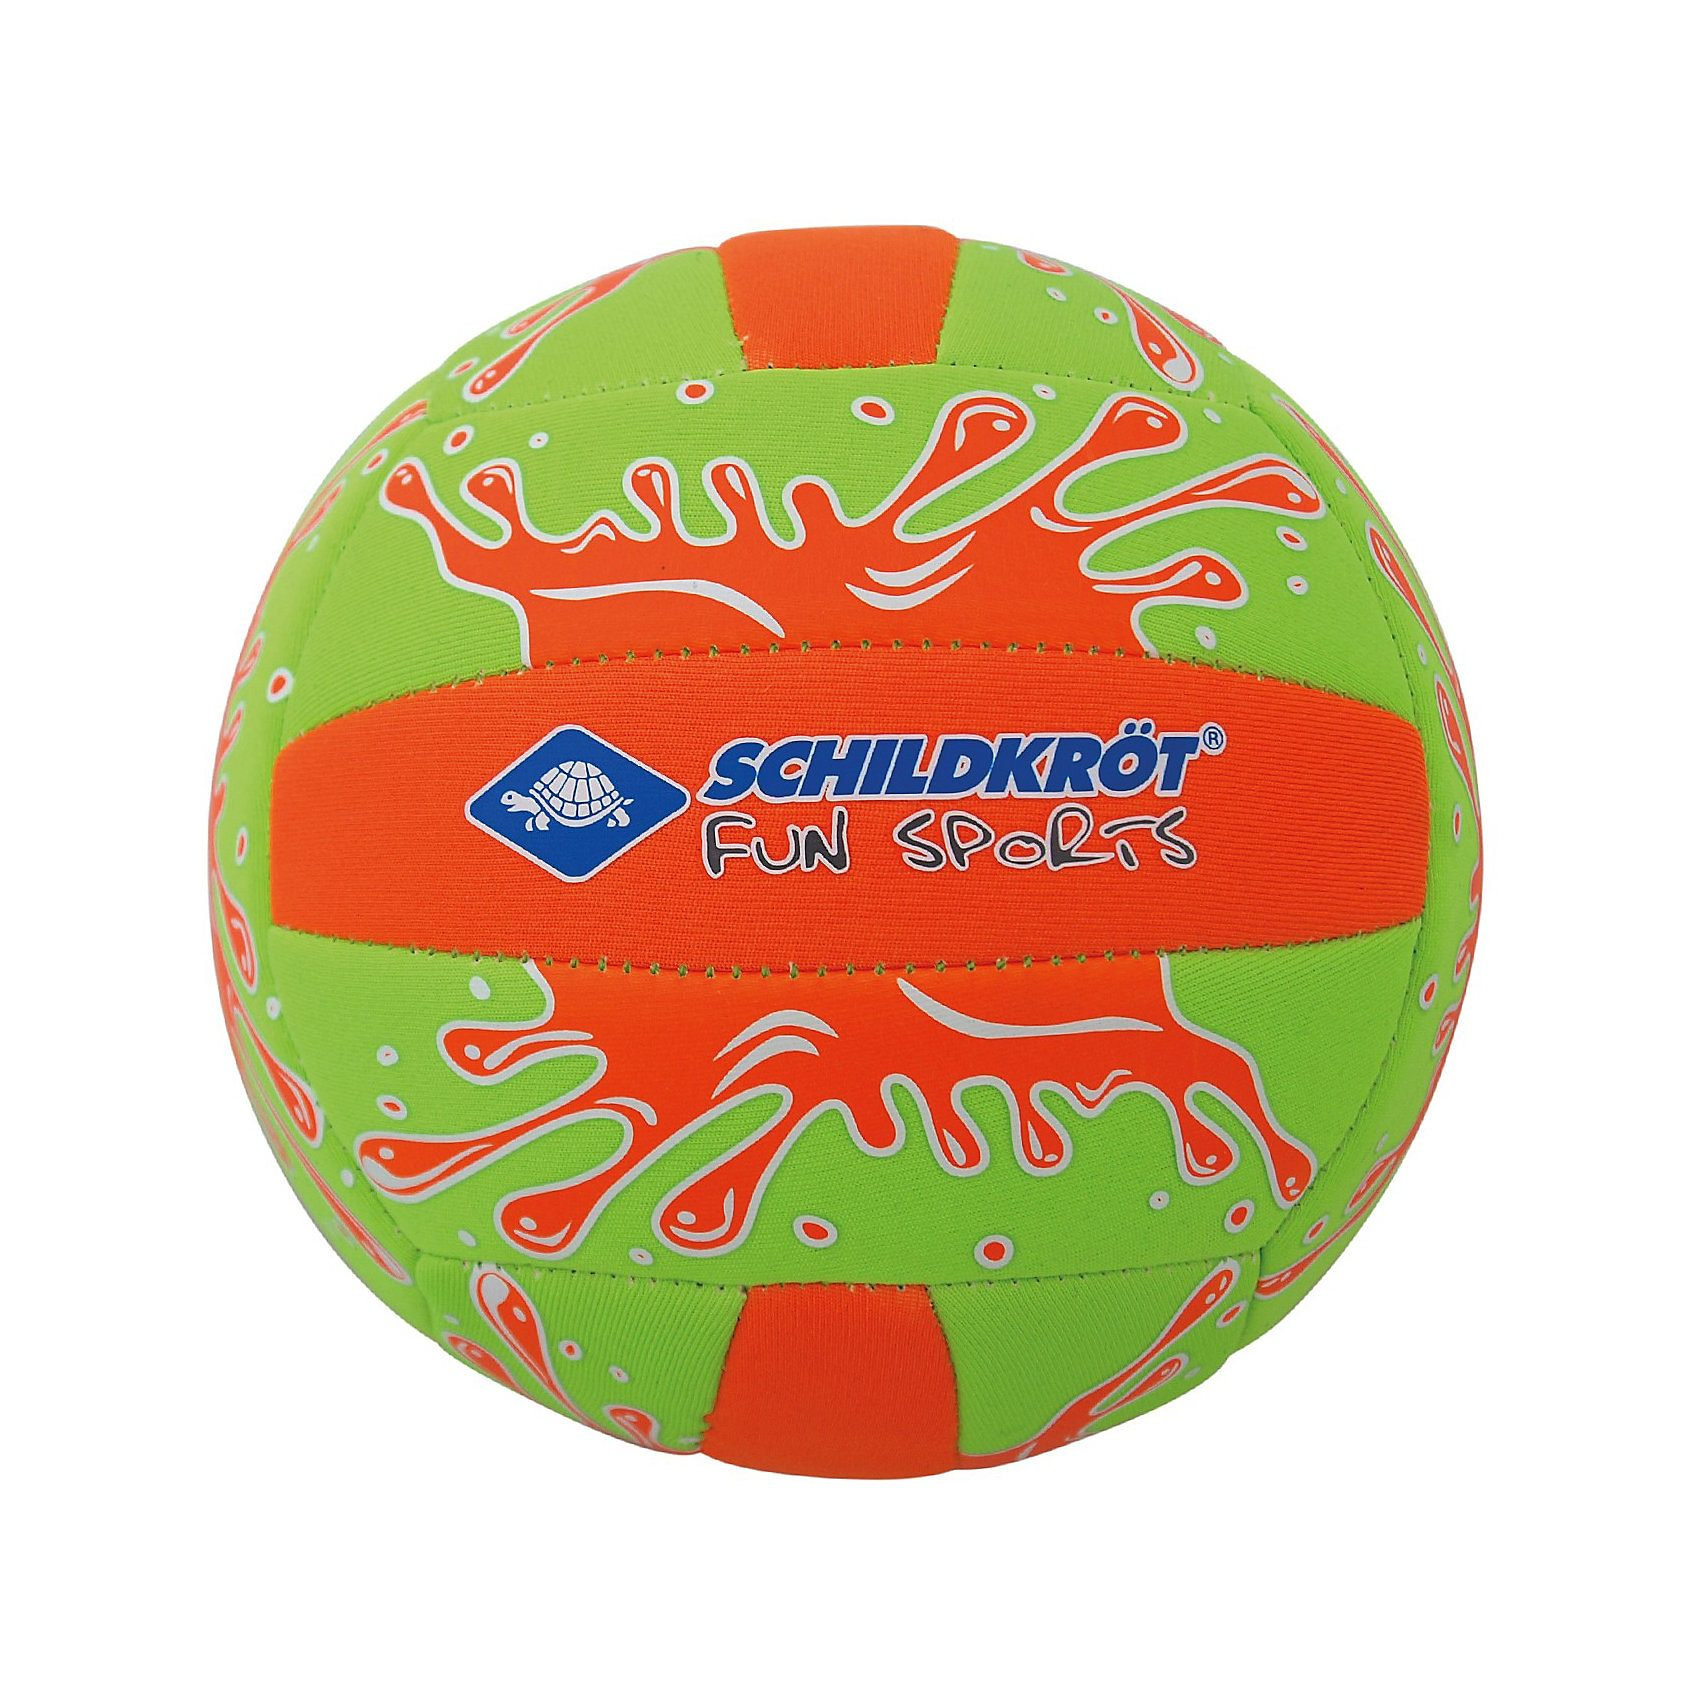 Schildkröt Funsports Neoprene Mini-Beachvolleyball